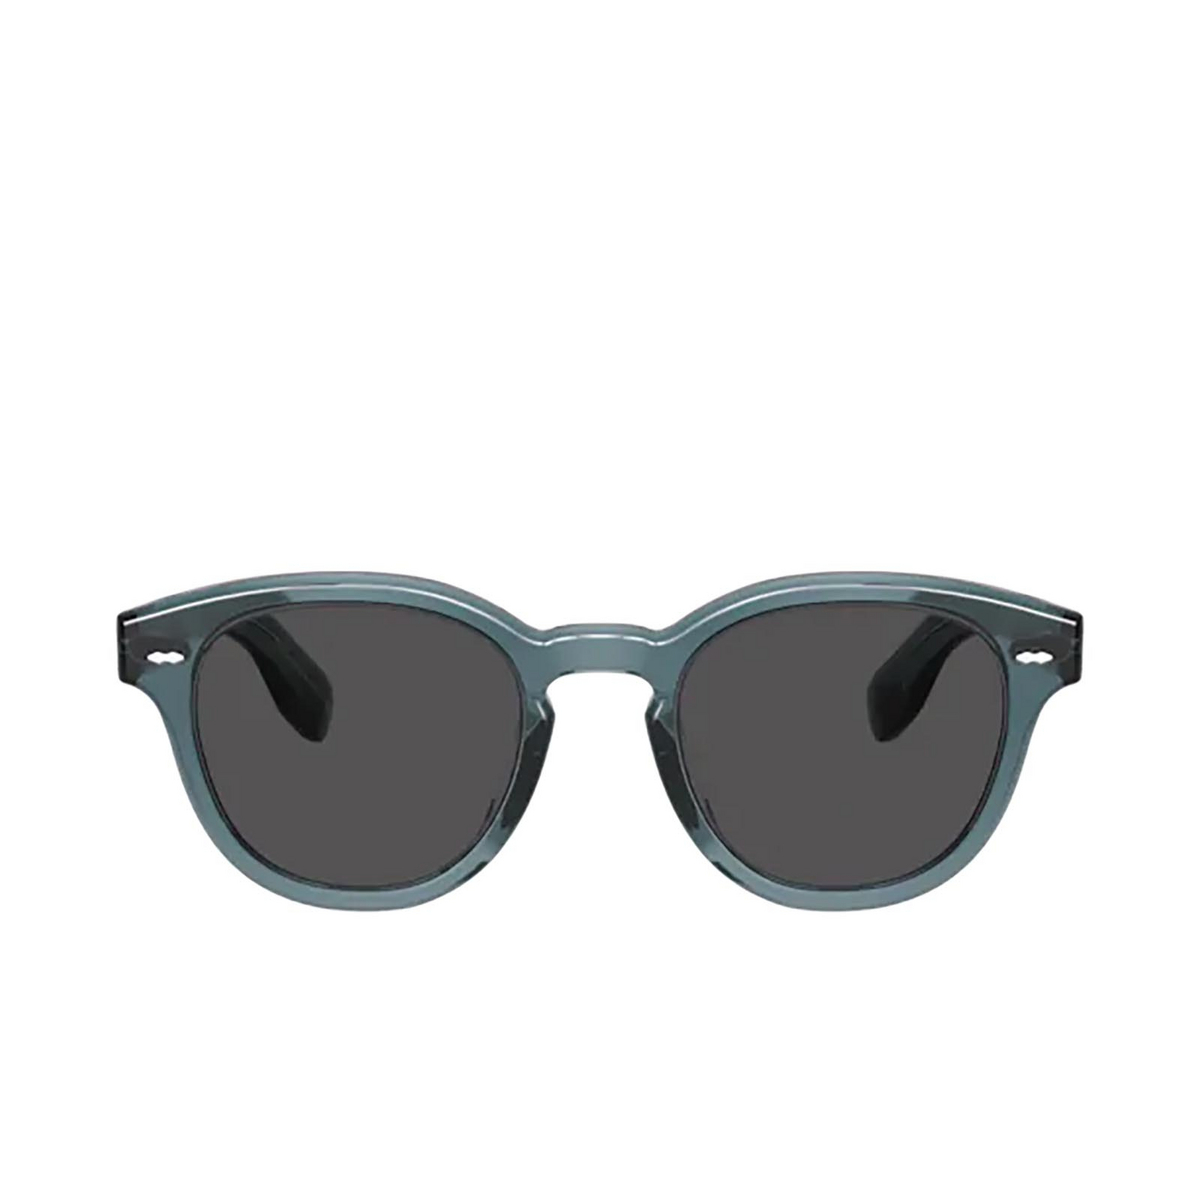 Oliver Peoples® : Cary Grant Sun OV5413SU color Washed Teal 1617R5.